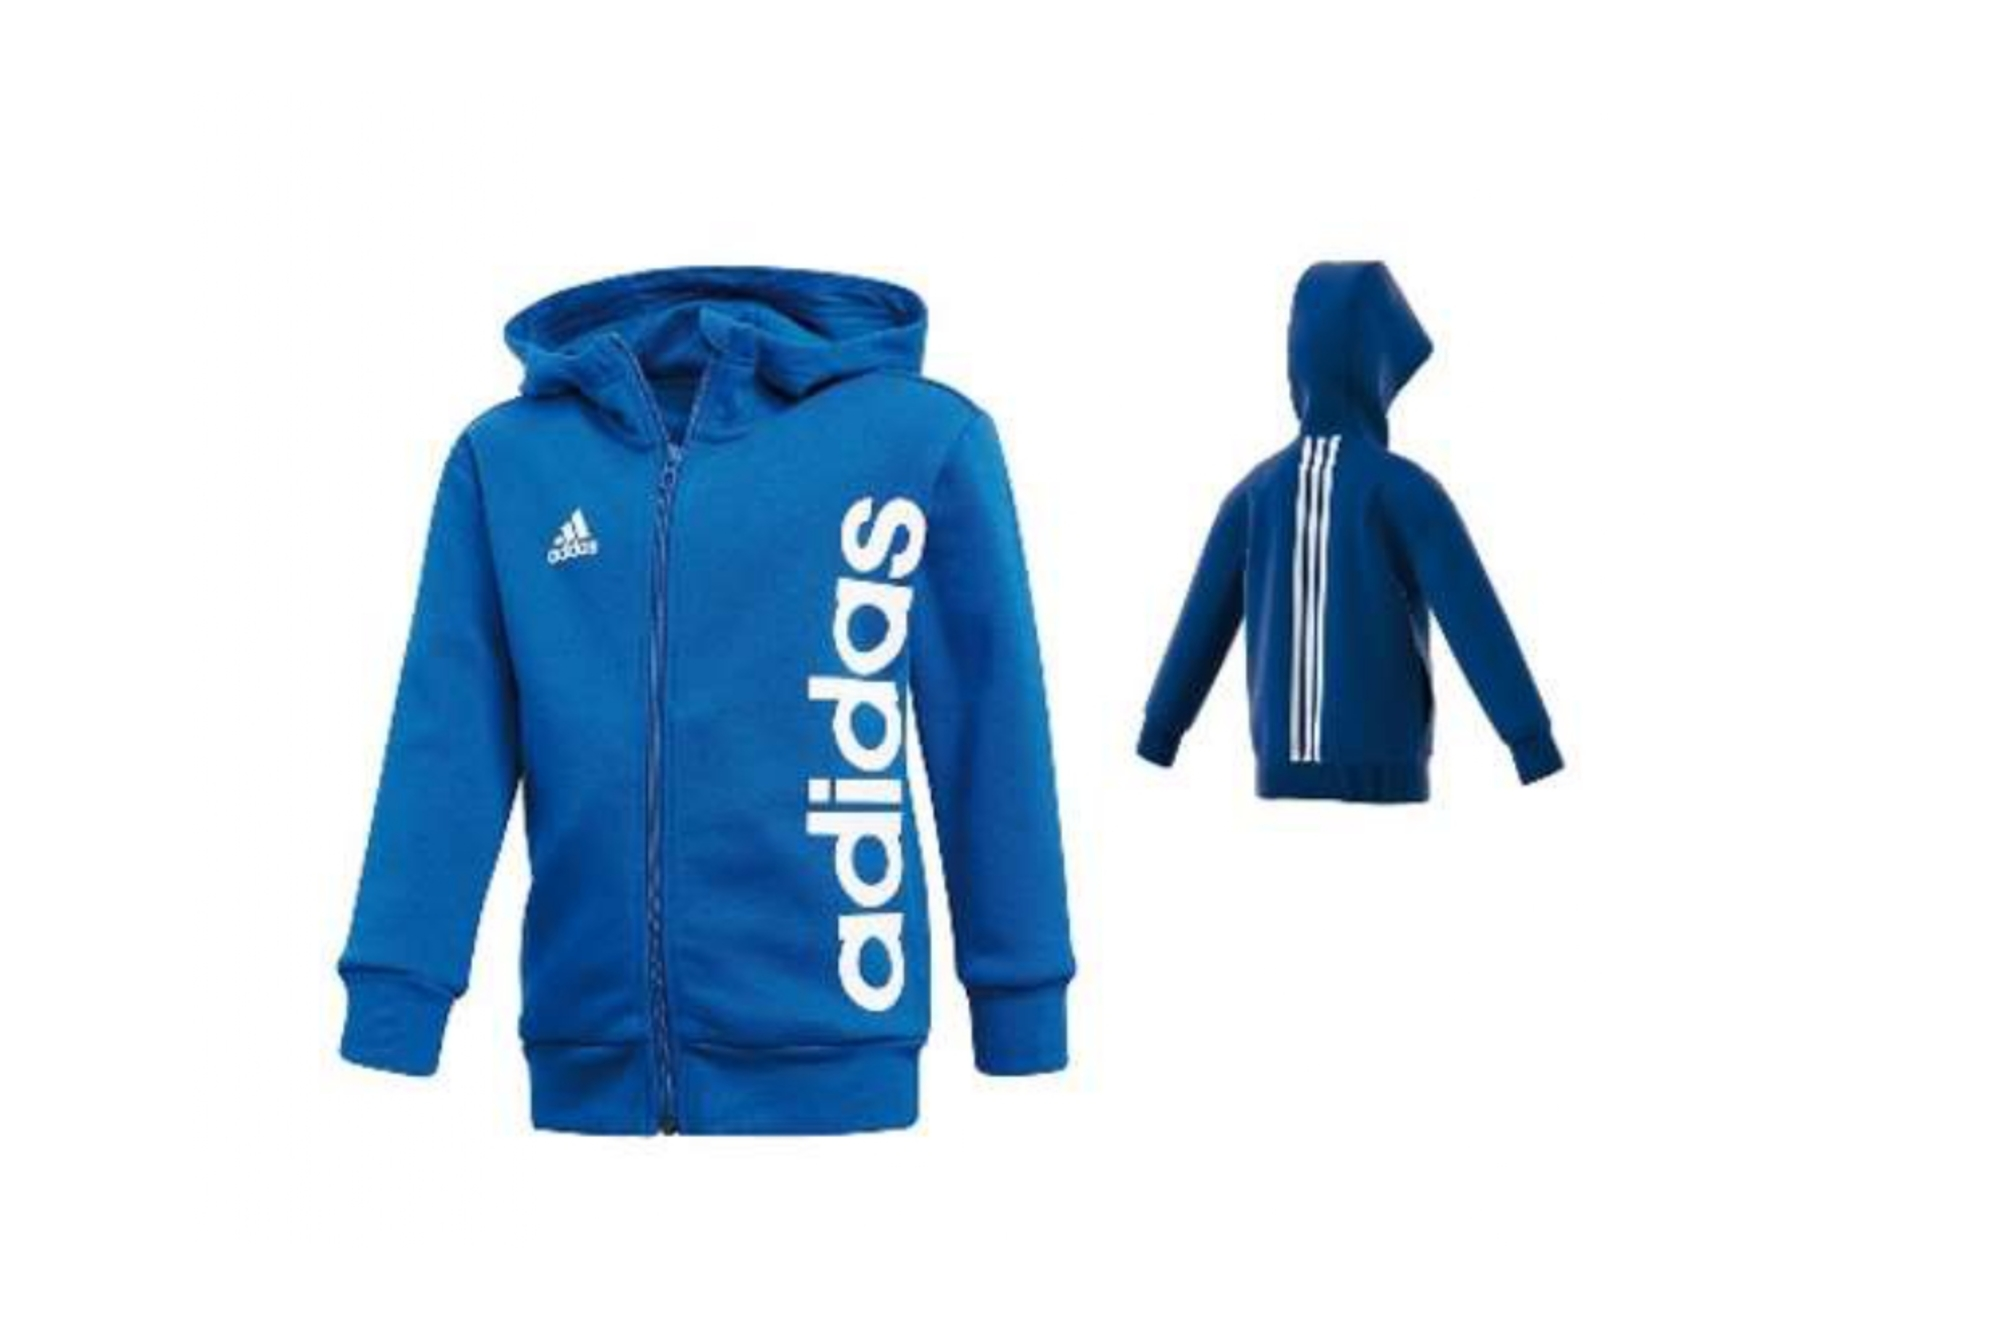 Felpa Adidas Junior Blu